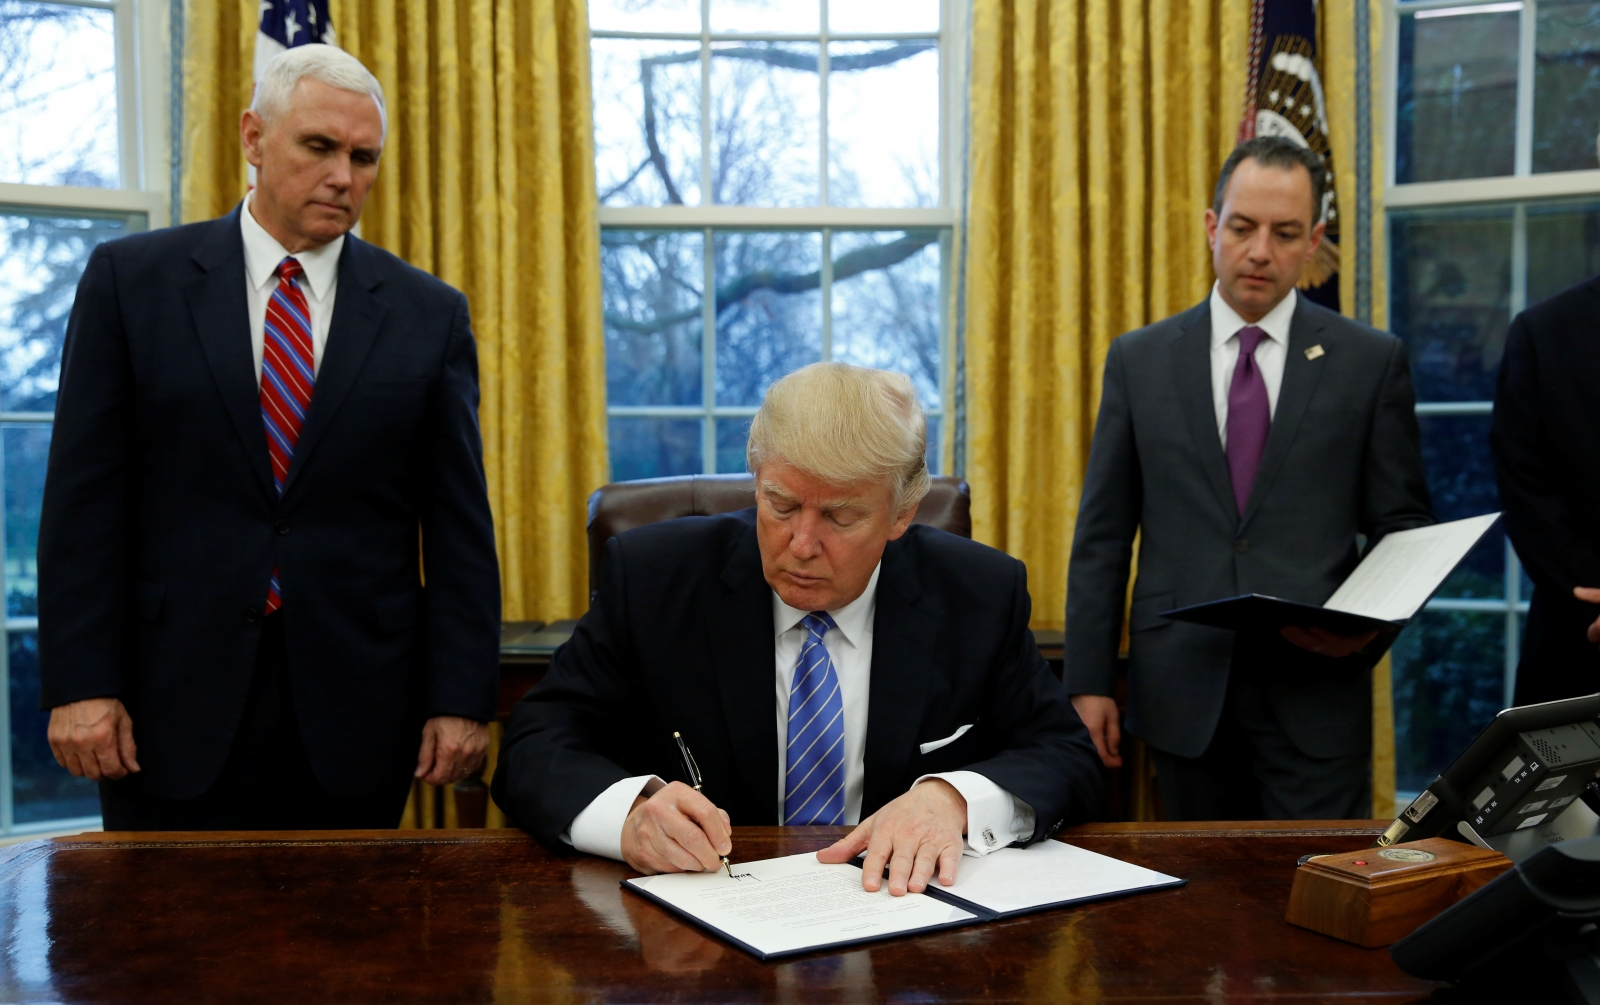 Trump signs TPP withdrawal